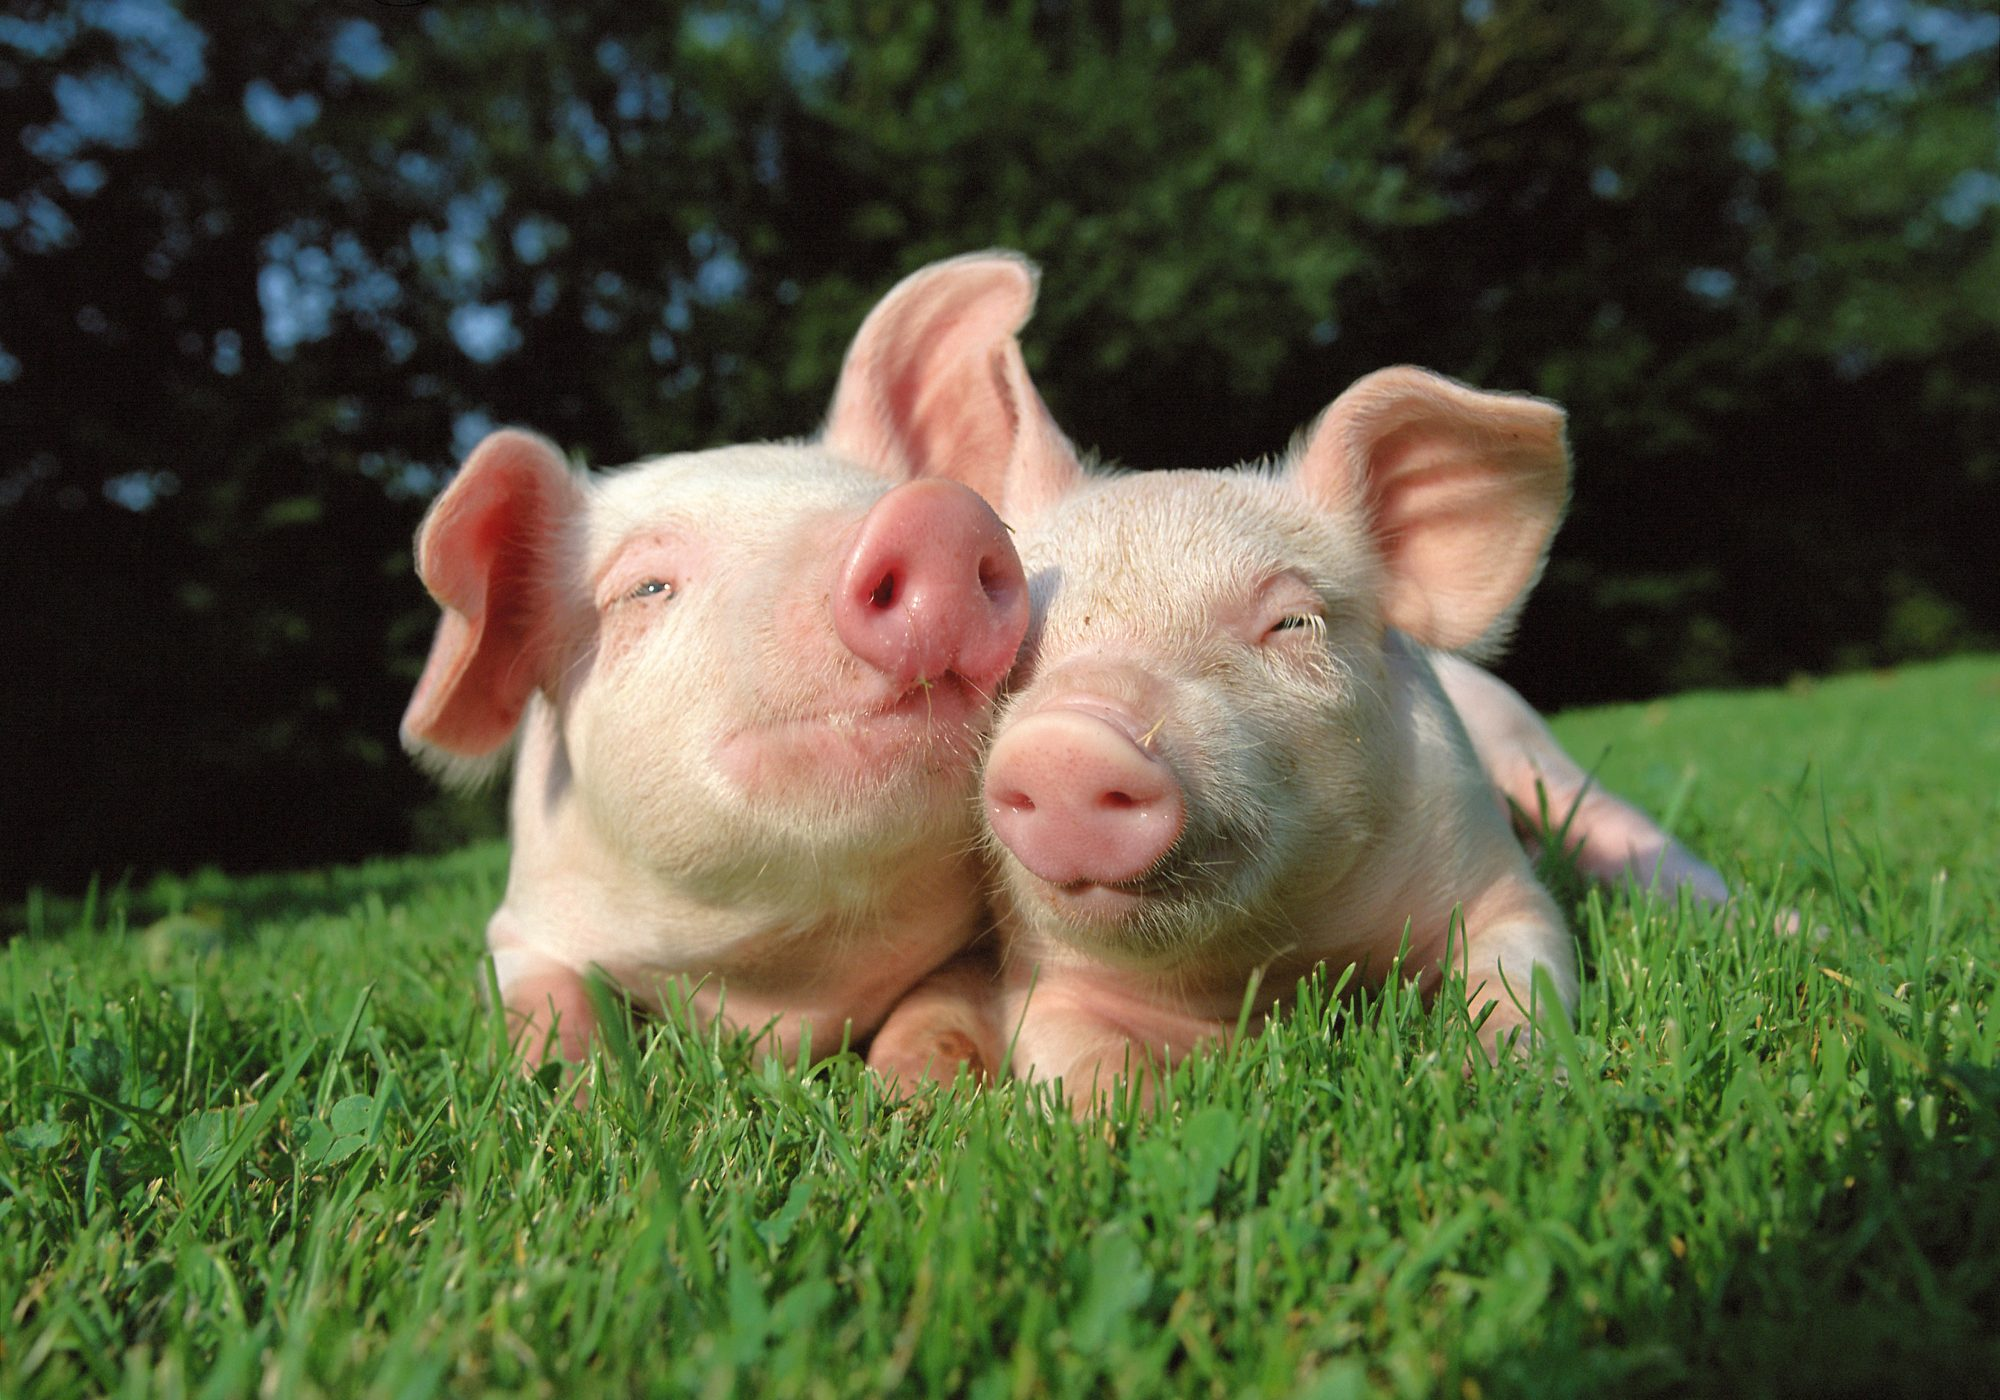 pigs in grass field